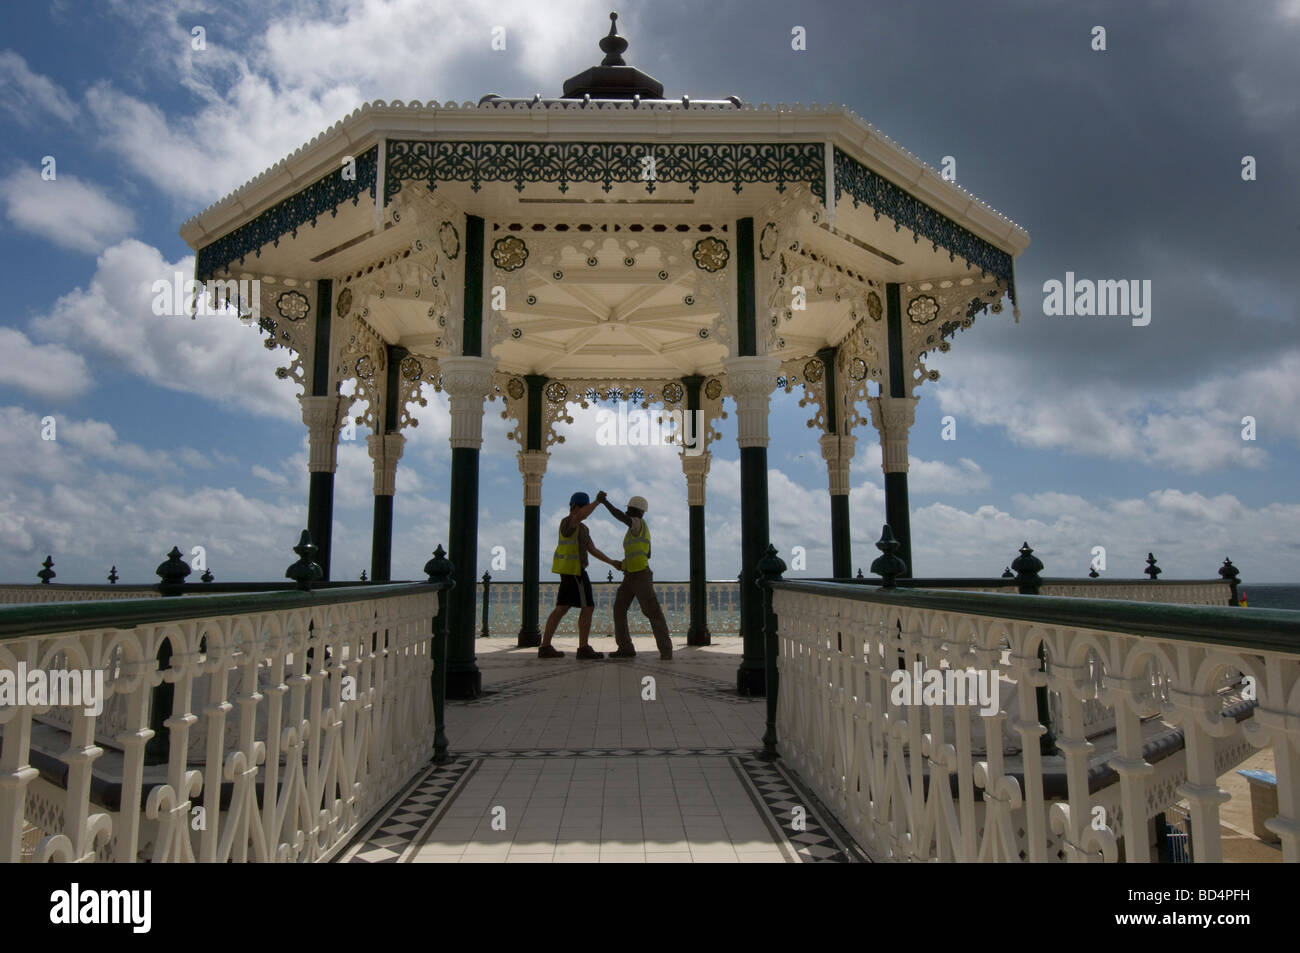 Two burly builders in hard hats and safety vests dance to celebrate the million pound refurbishment of Brighton - Stock Image